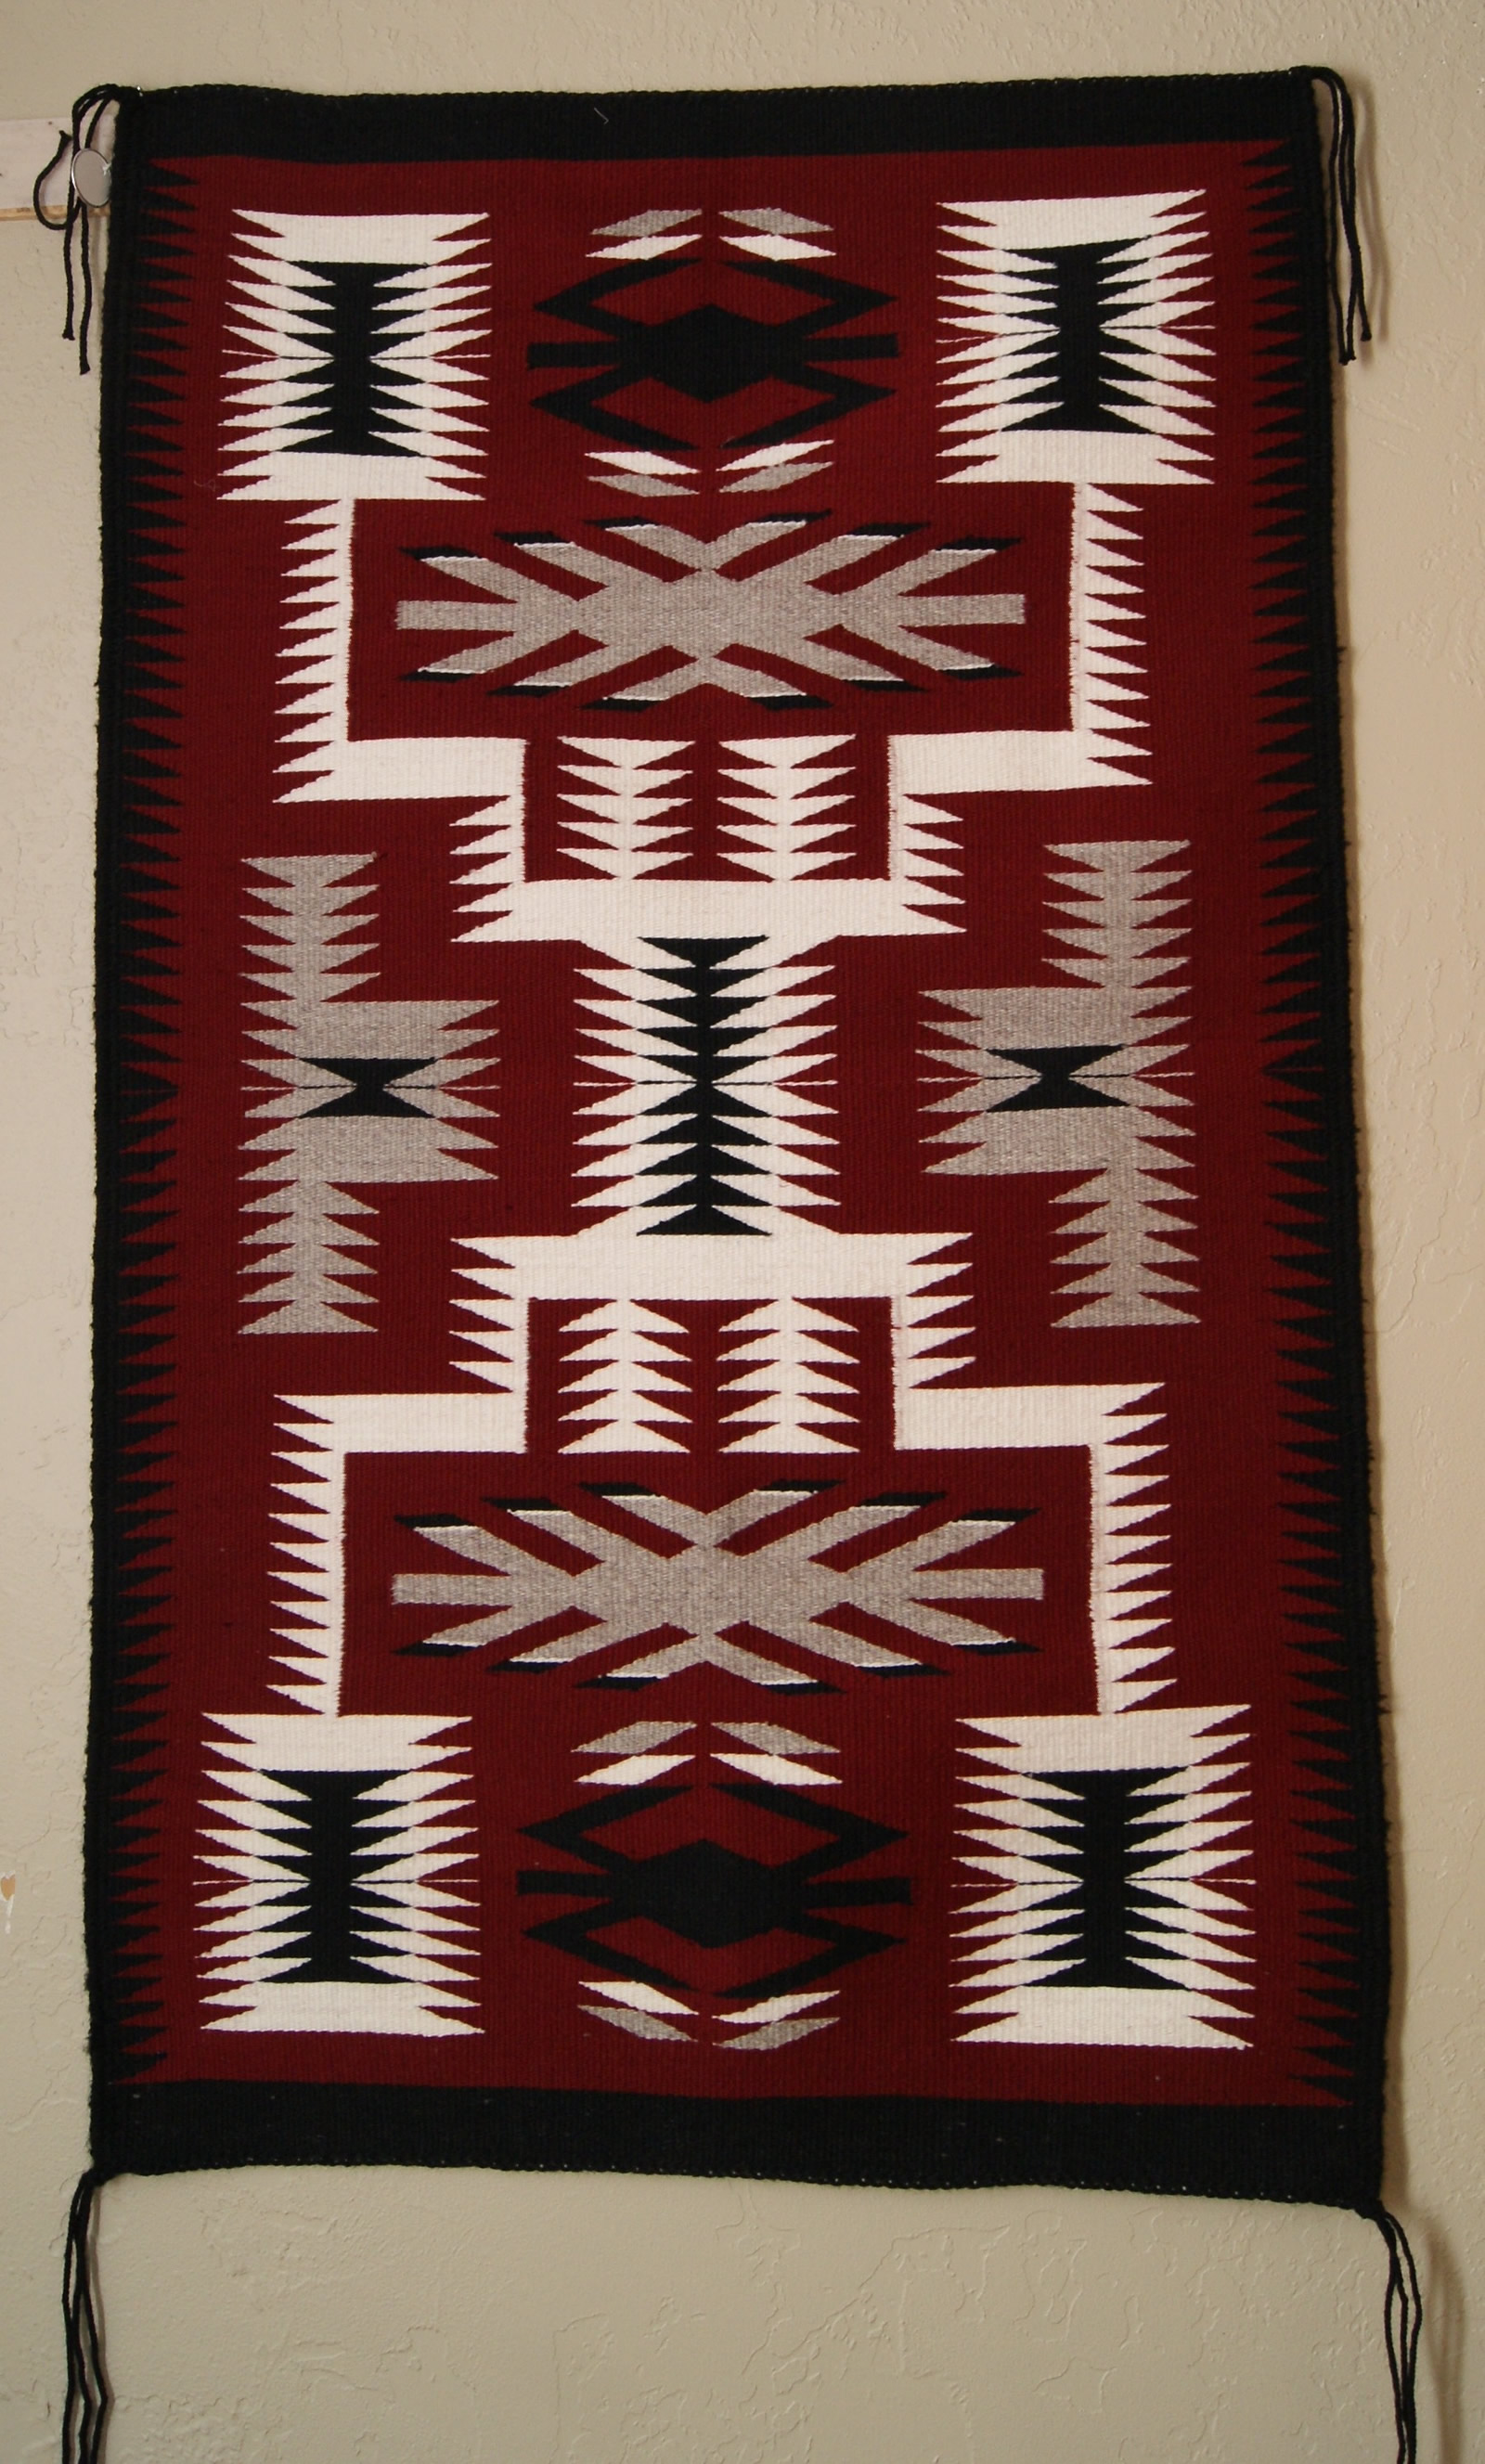 rug appshow decor designs home charley large storm rugs pattern sale navajo us for s